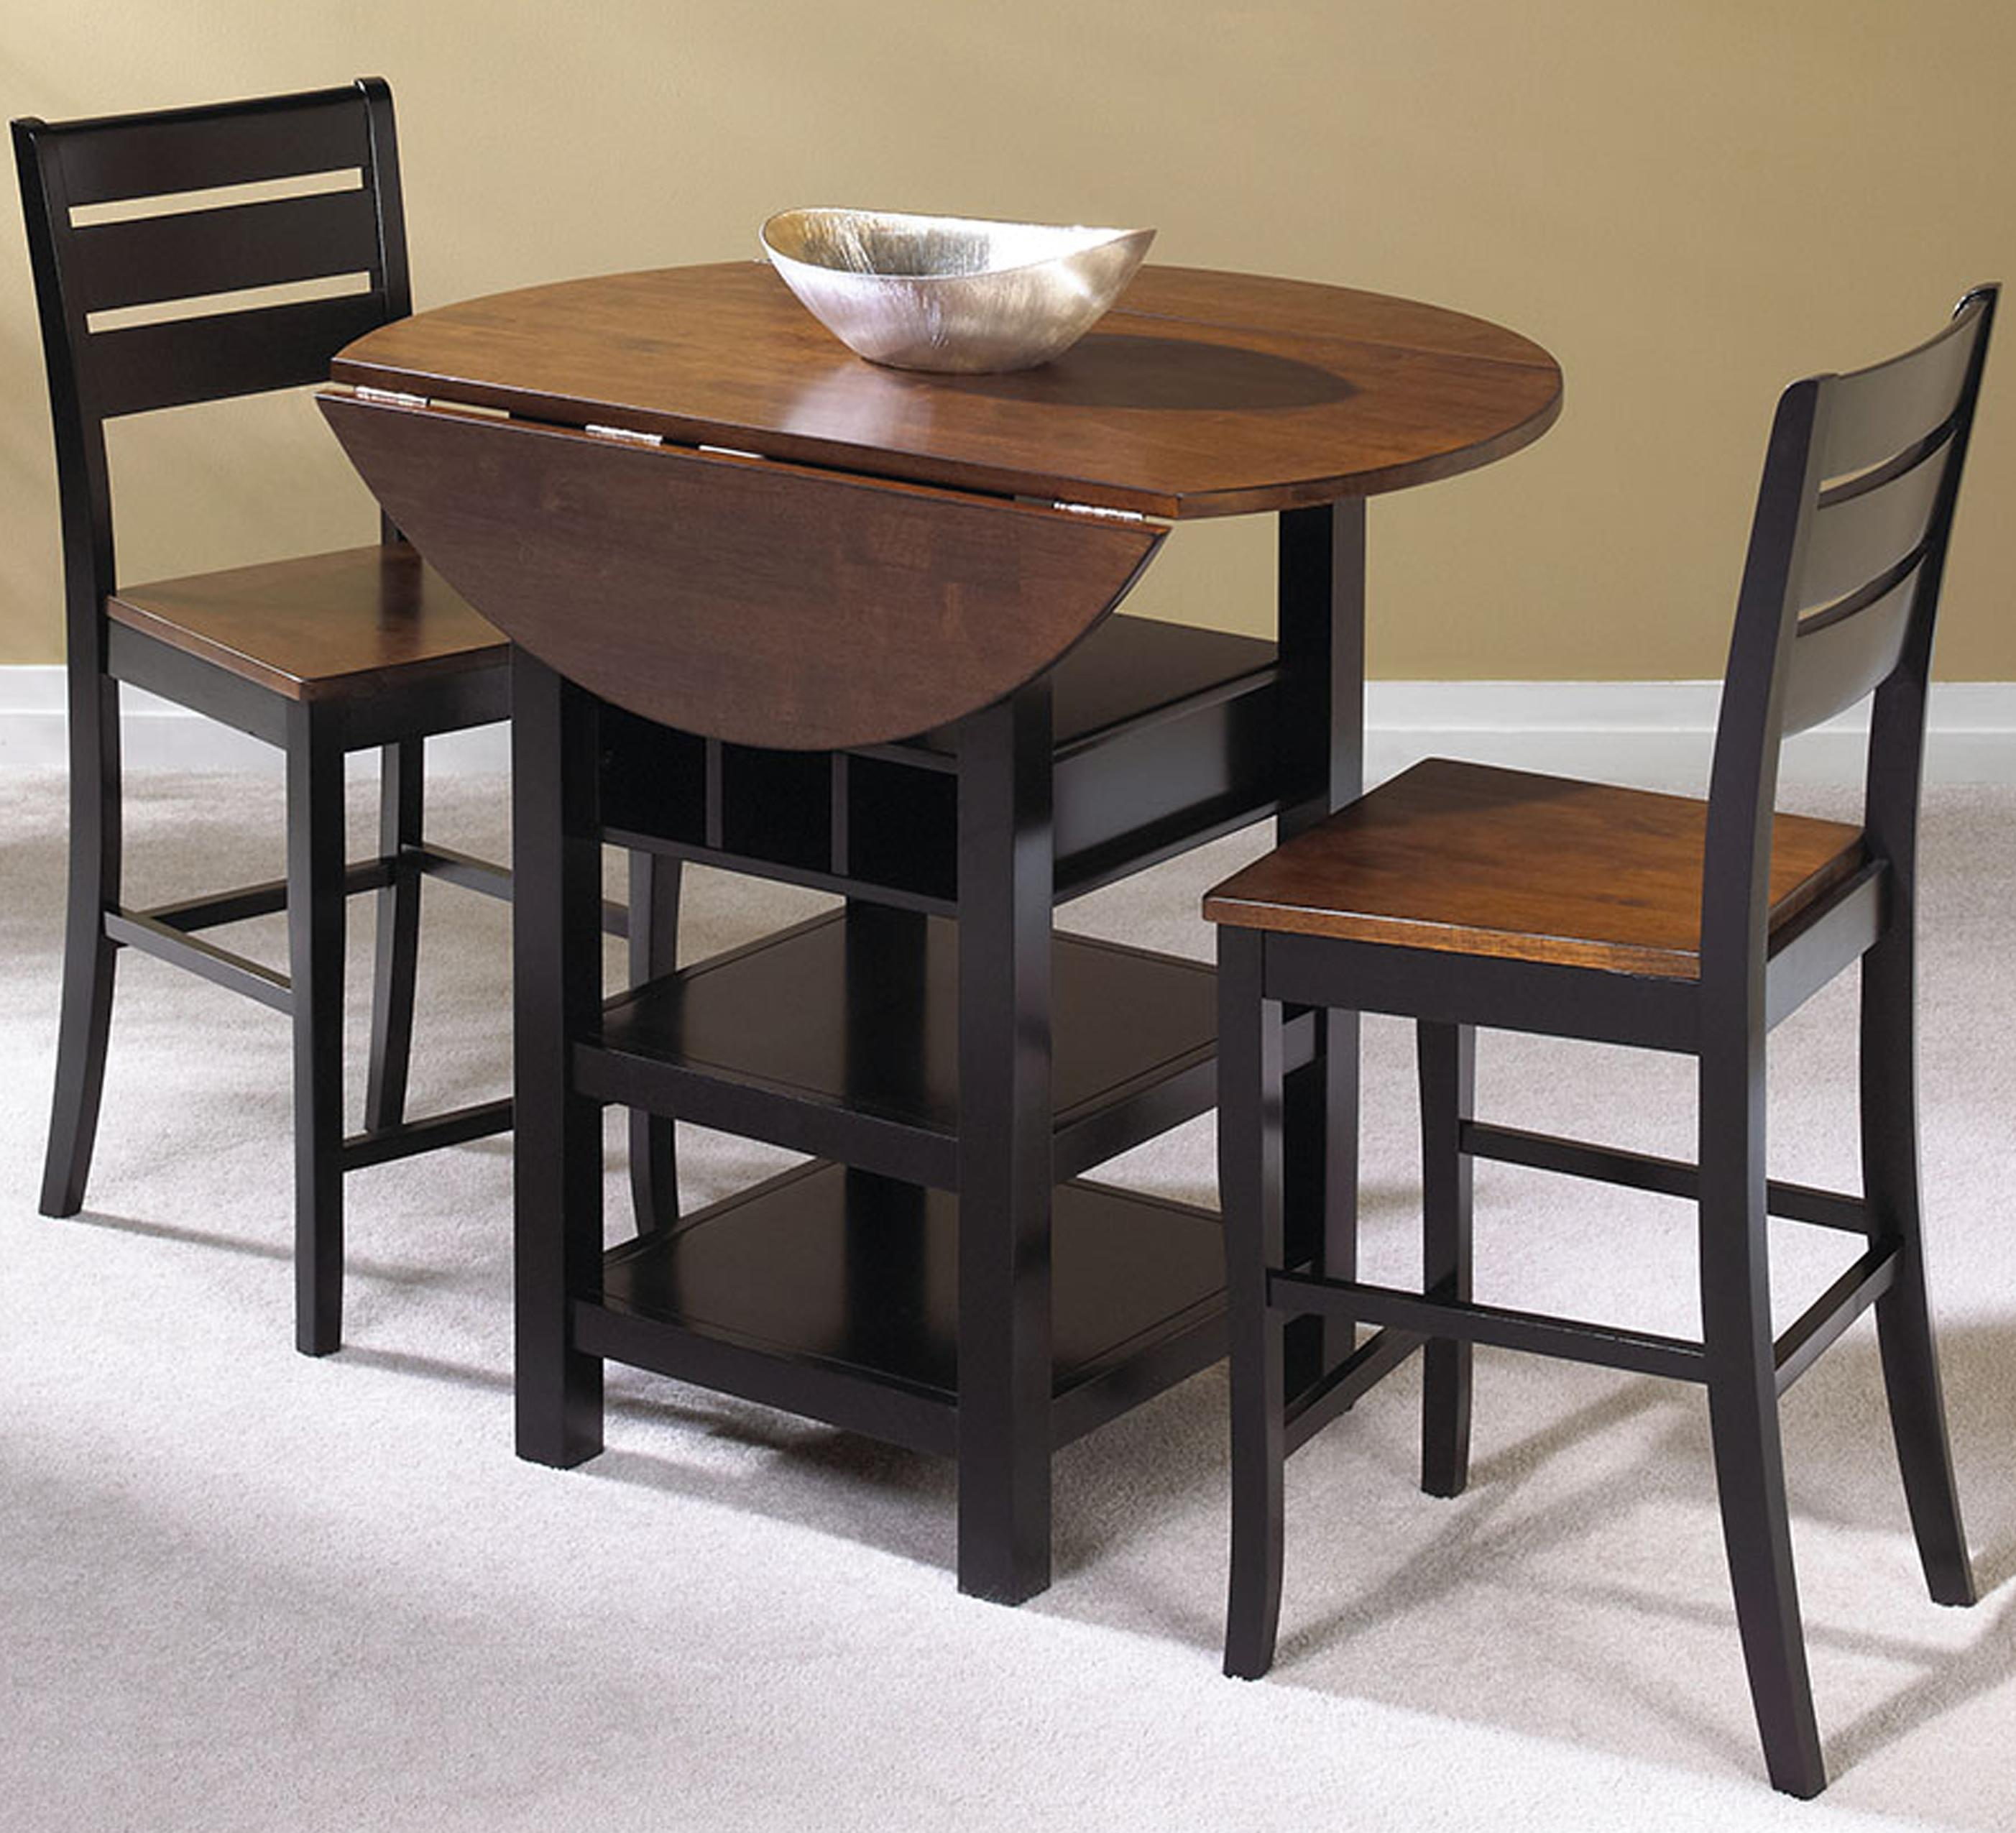 & Pub Table Leaf Image collections - Bar Height Dining Table Set